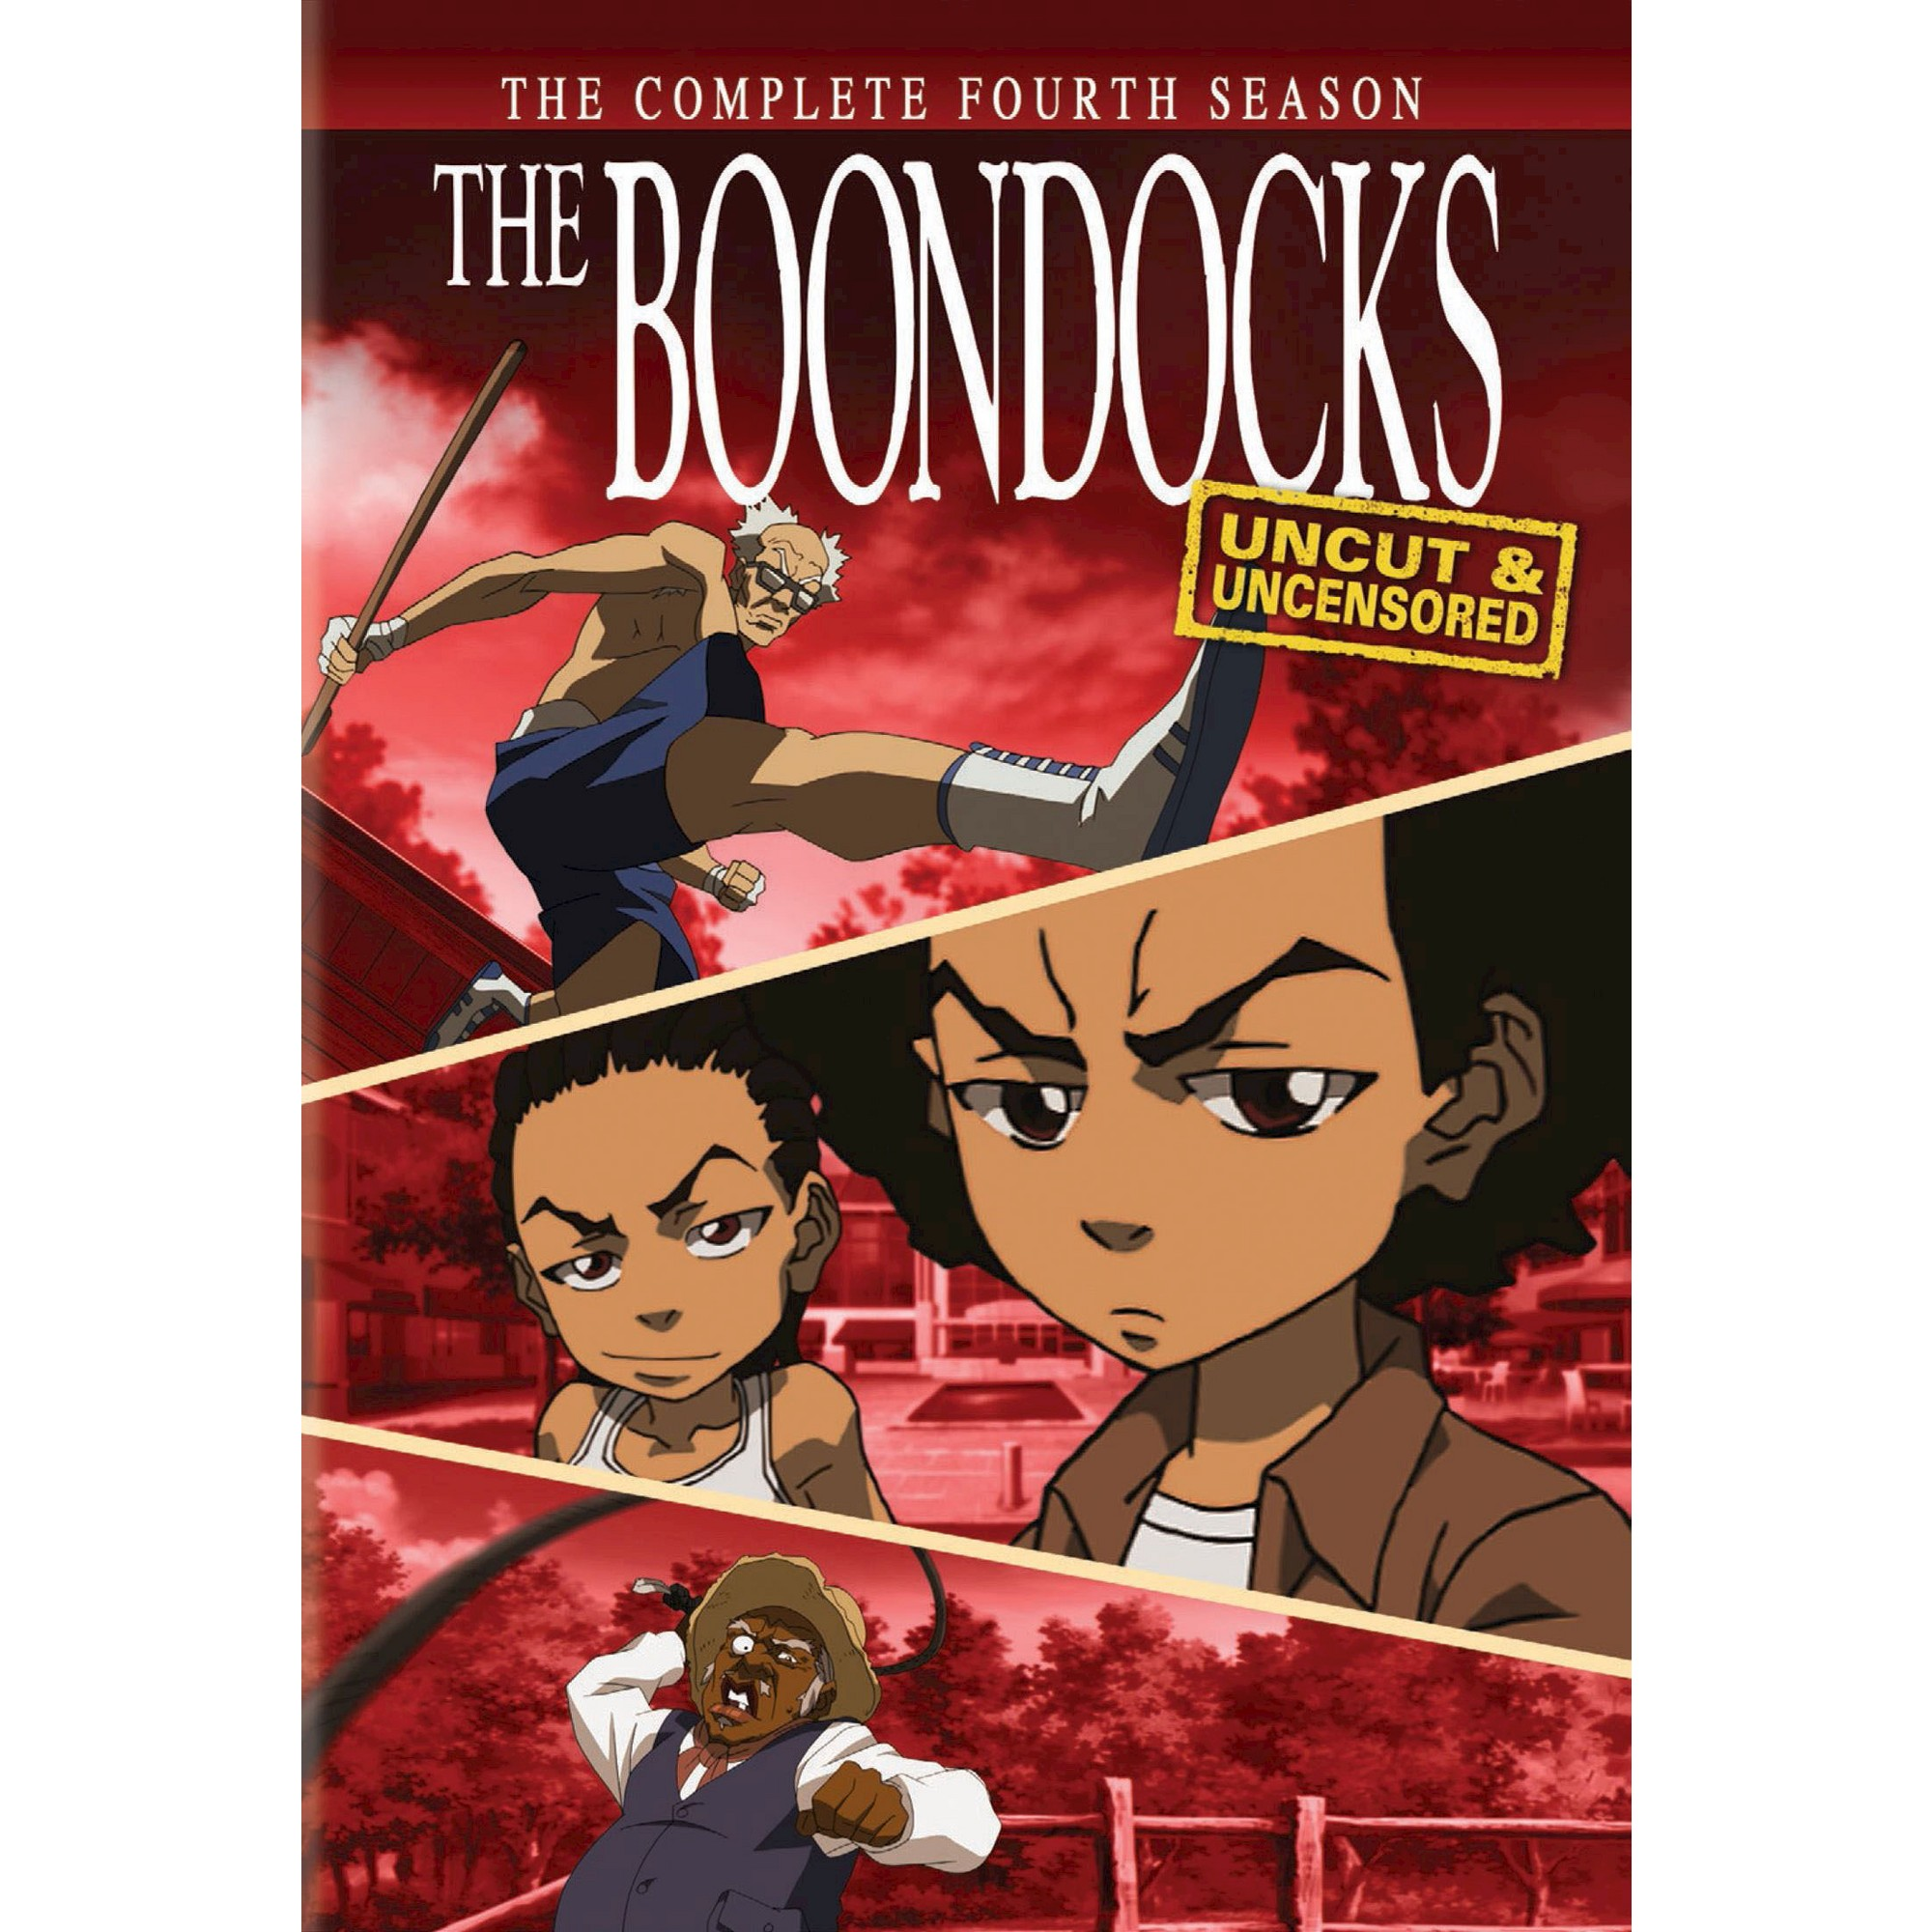 The Boondocks The Complete Fourth Season [4 Discs